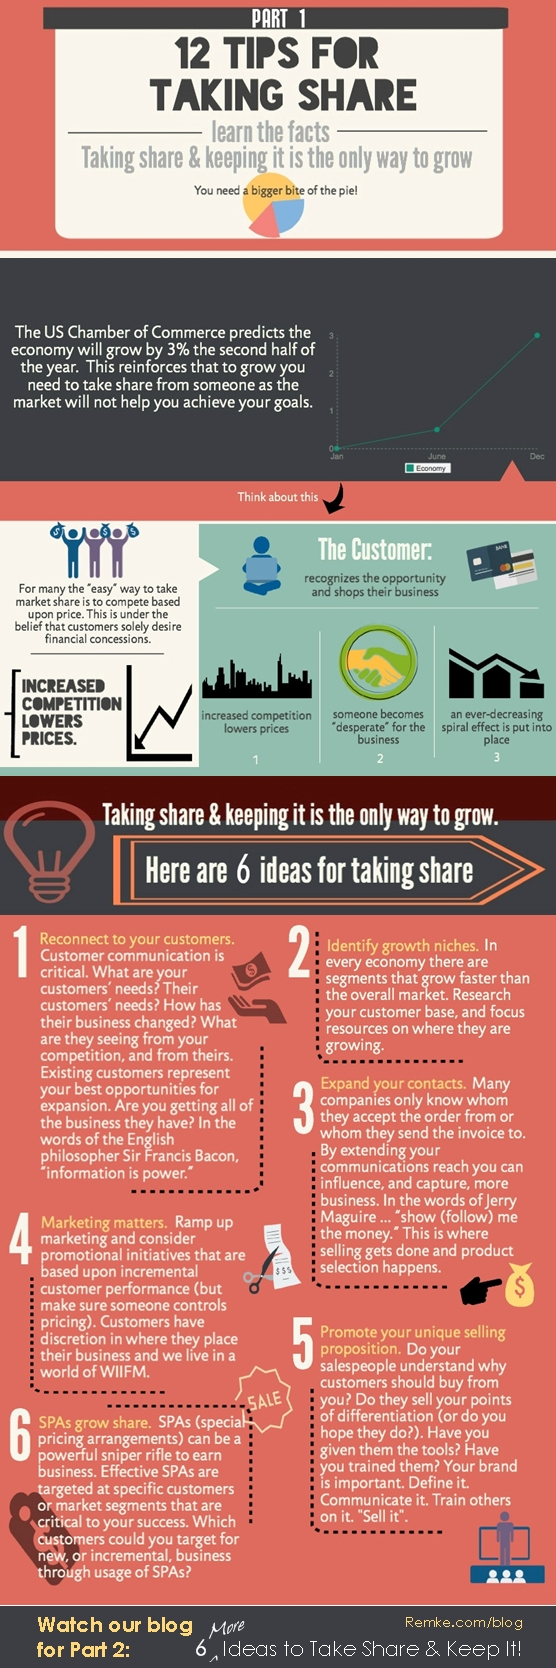 Taking Market Share Infographic. With the economy growing slowly, the best way to grow your business is by taking market share away from the competition - Remke.com/blog